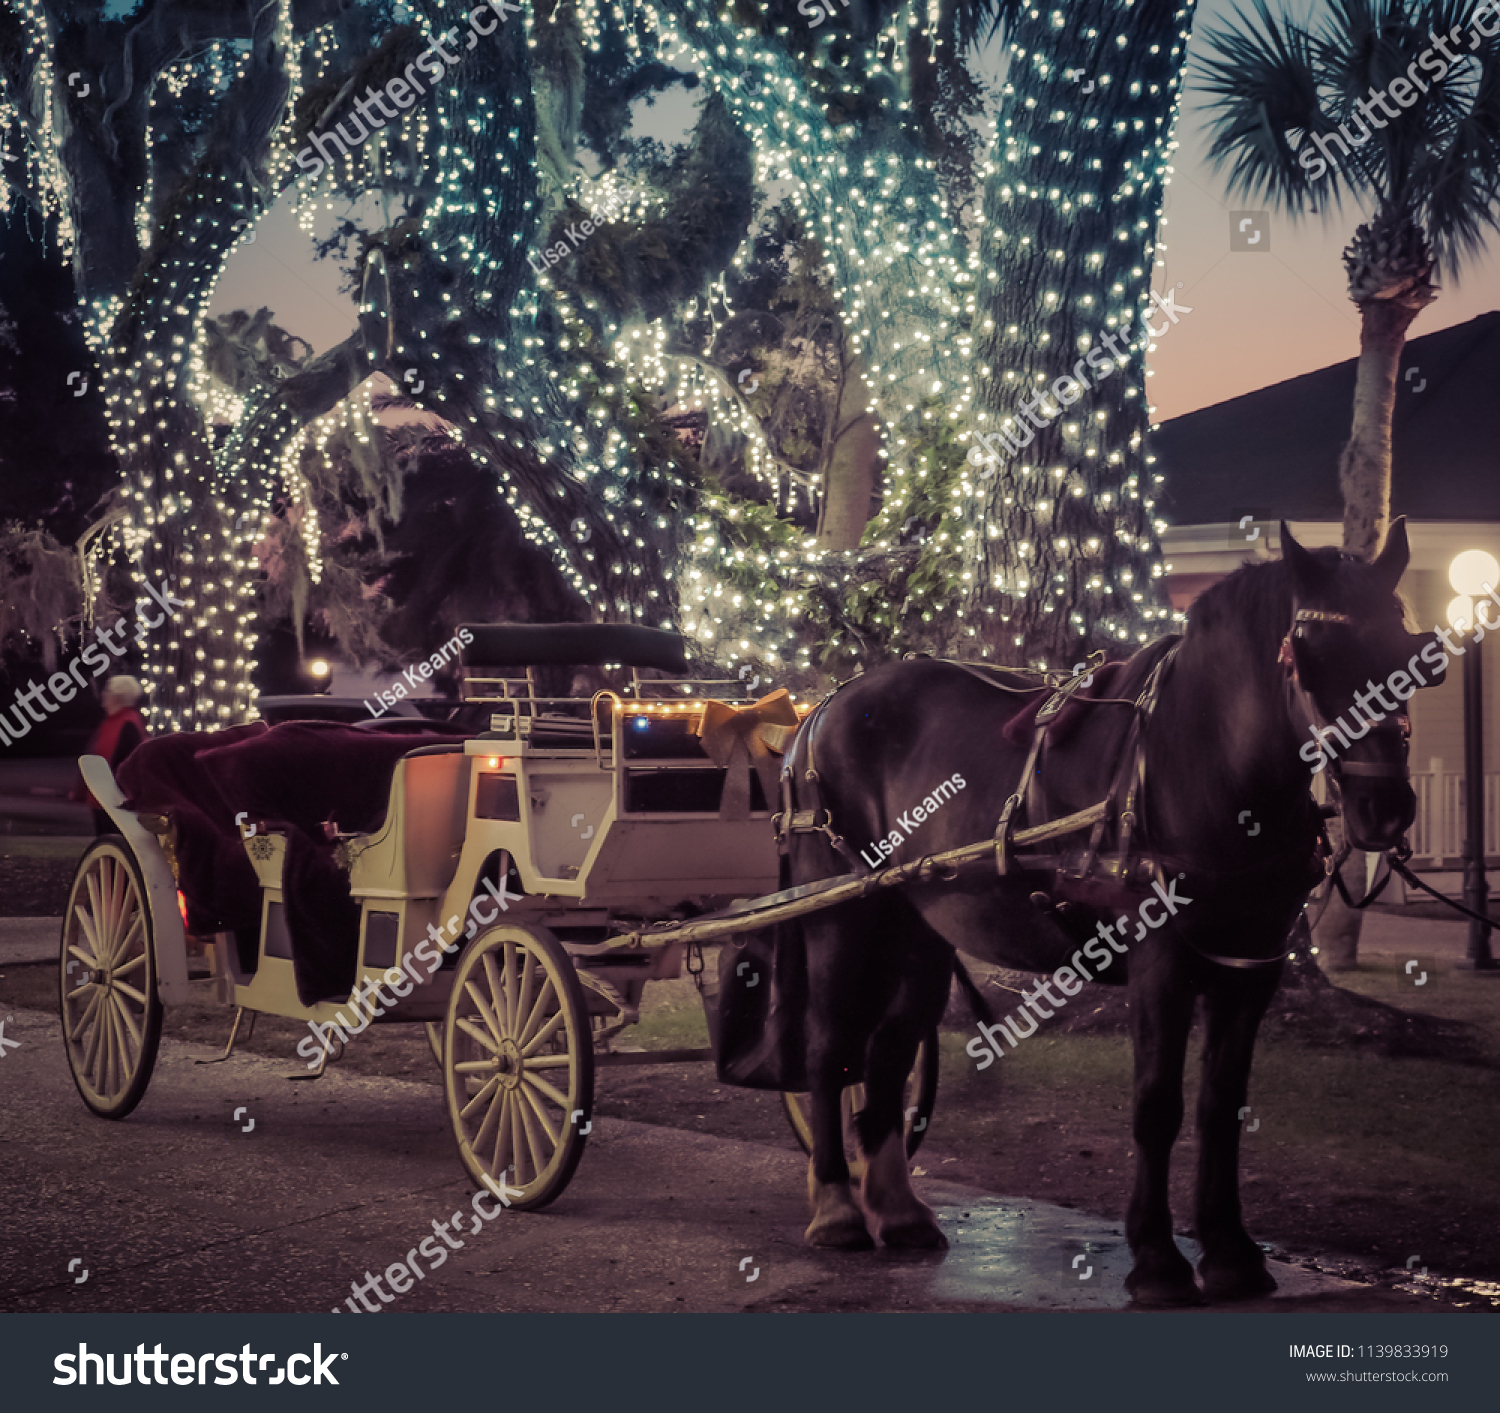 Christmas Lights Horse Carriage Holidays Stock Image 1139833919